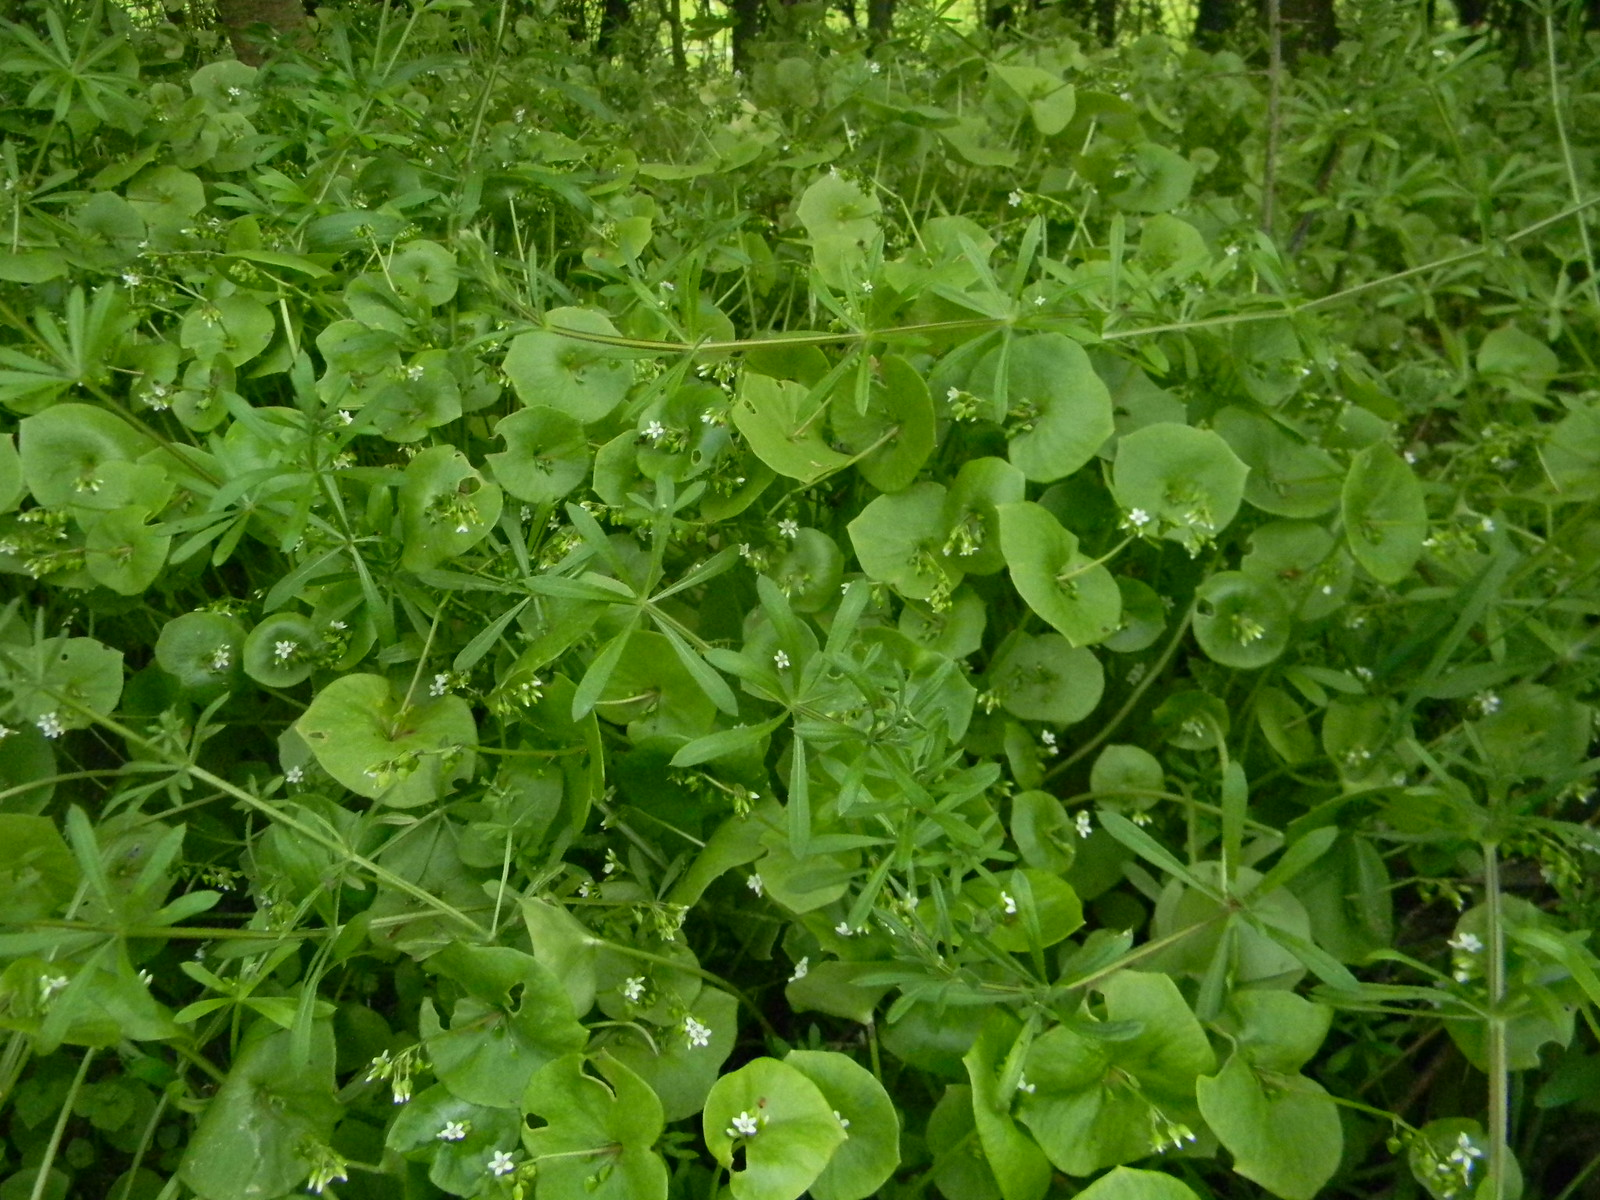 Funny green stuff - spring beauty An american plant growing wild over here. Ive only ever seen it on this walk. Claytonia perfoliata aka miners lettuce. Manningtree Circular.